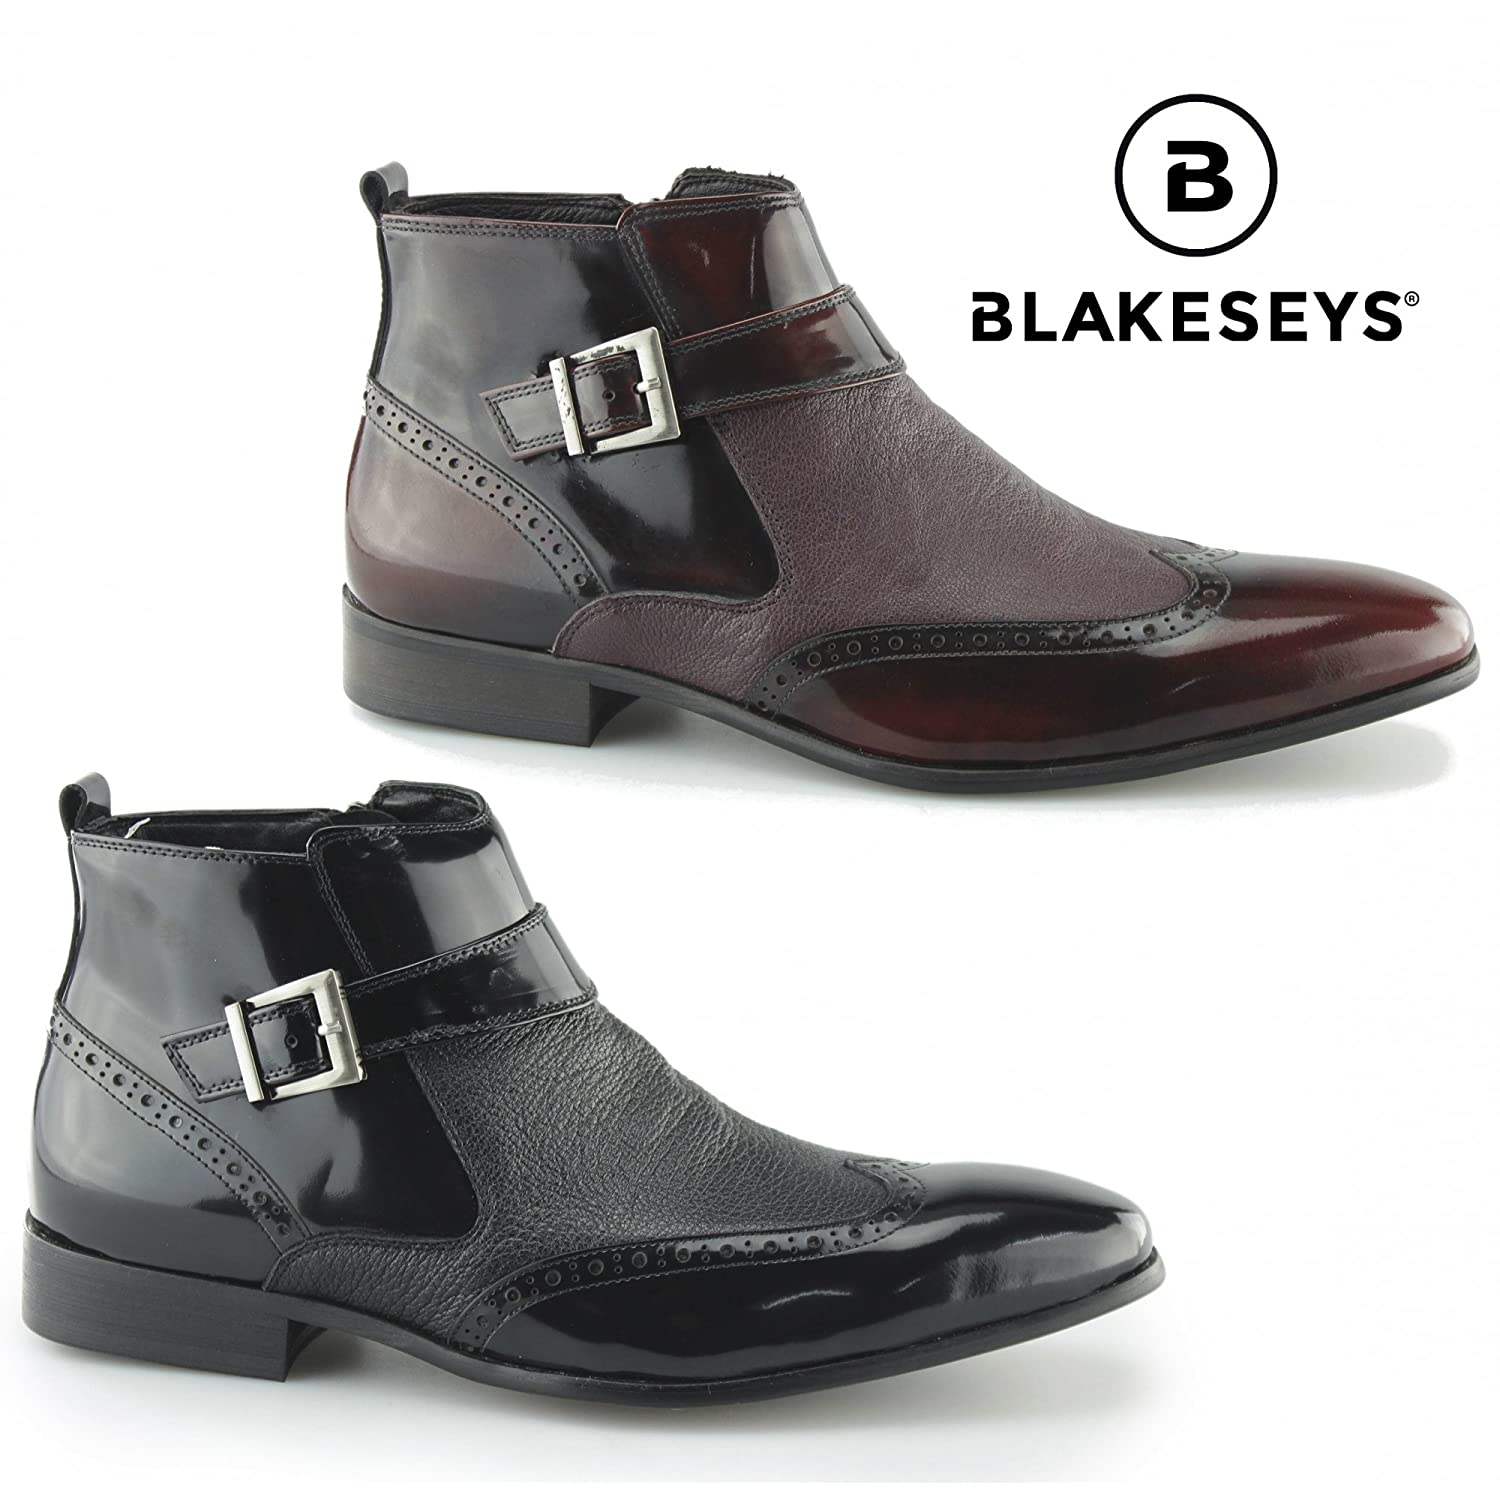 Blakeseys Brosnan Mens Patent/Leather Zip Ankle Boots Burgundy:  Amazon.co.uk: Shoes & Bags